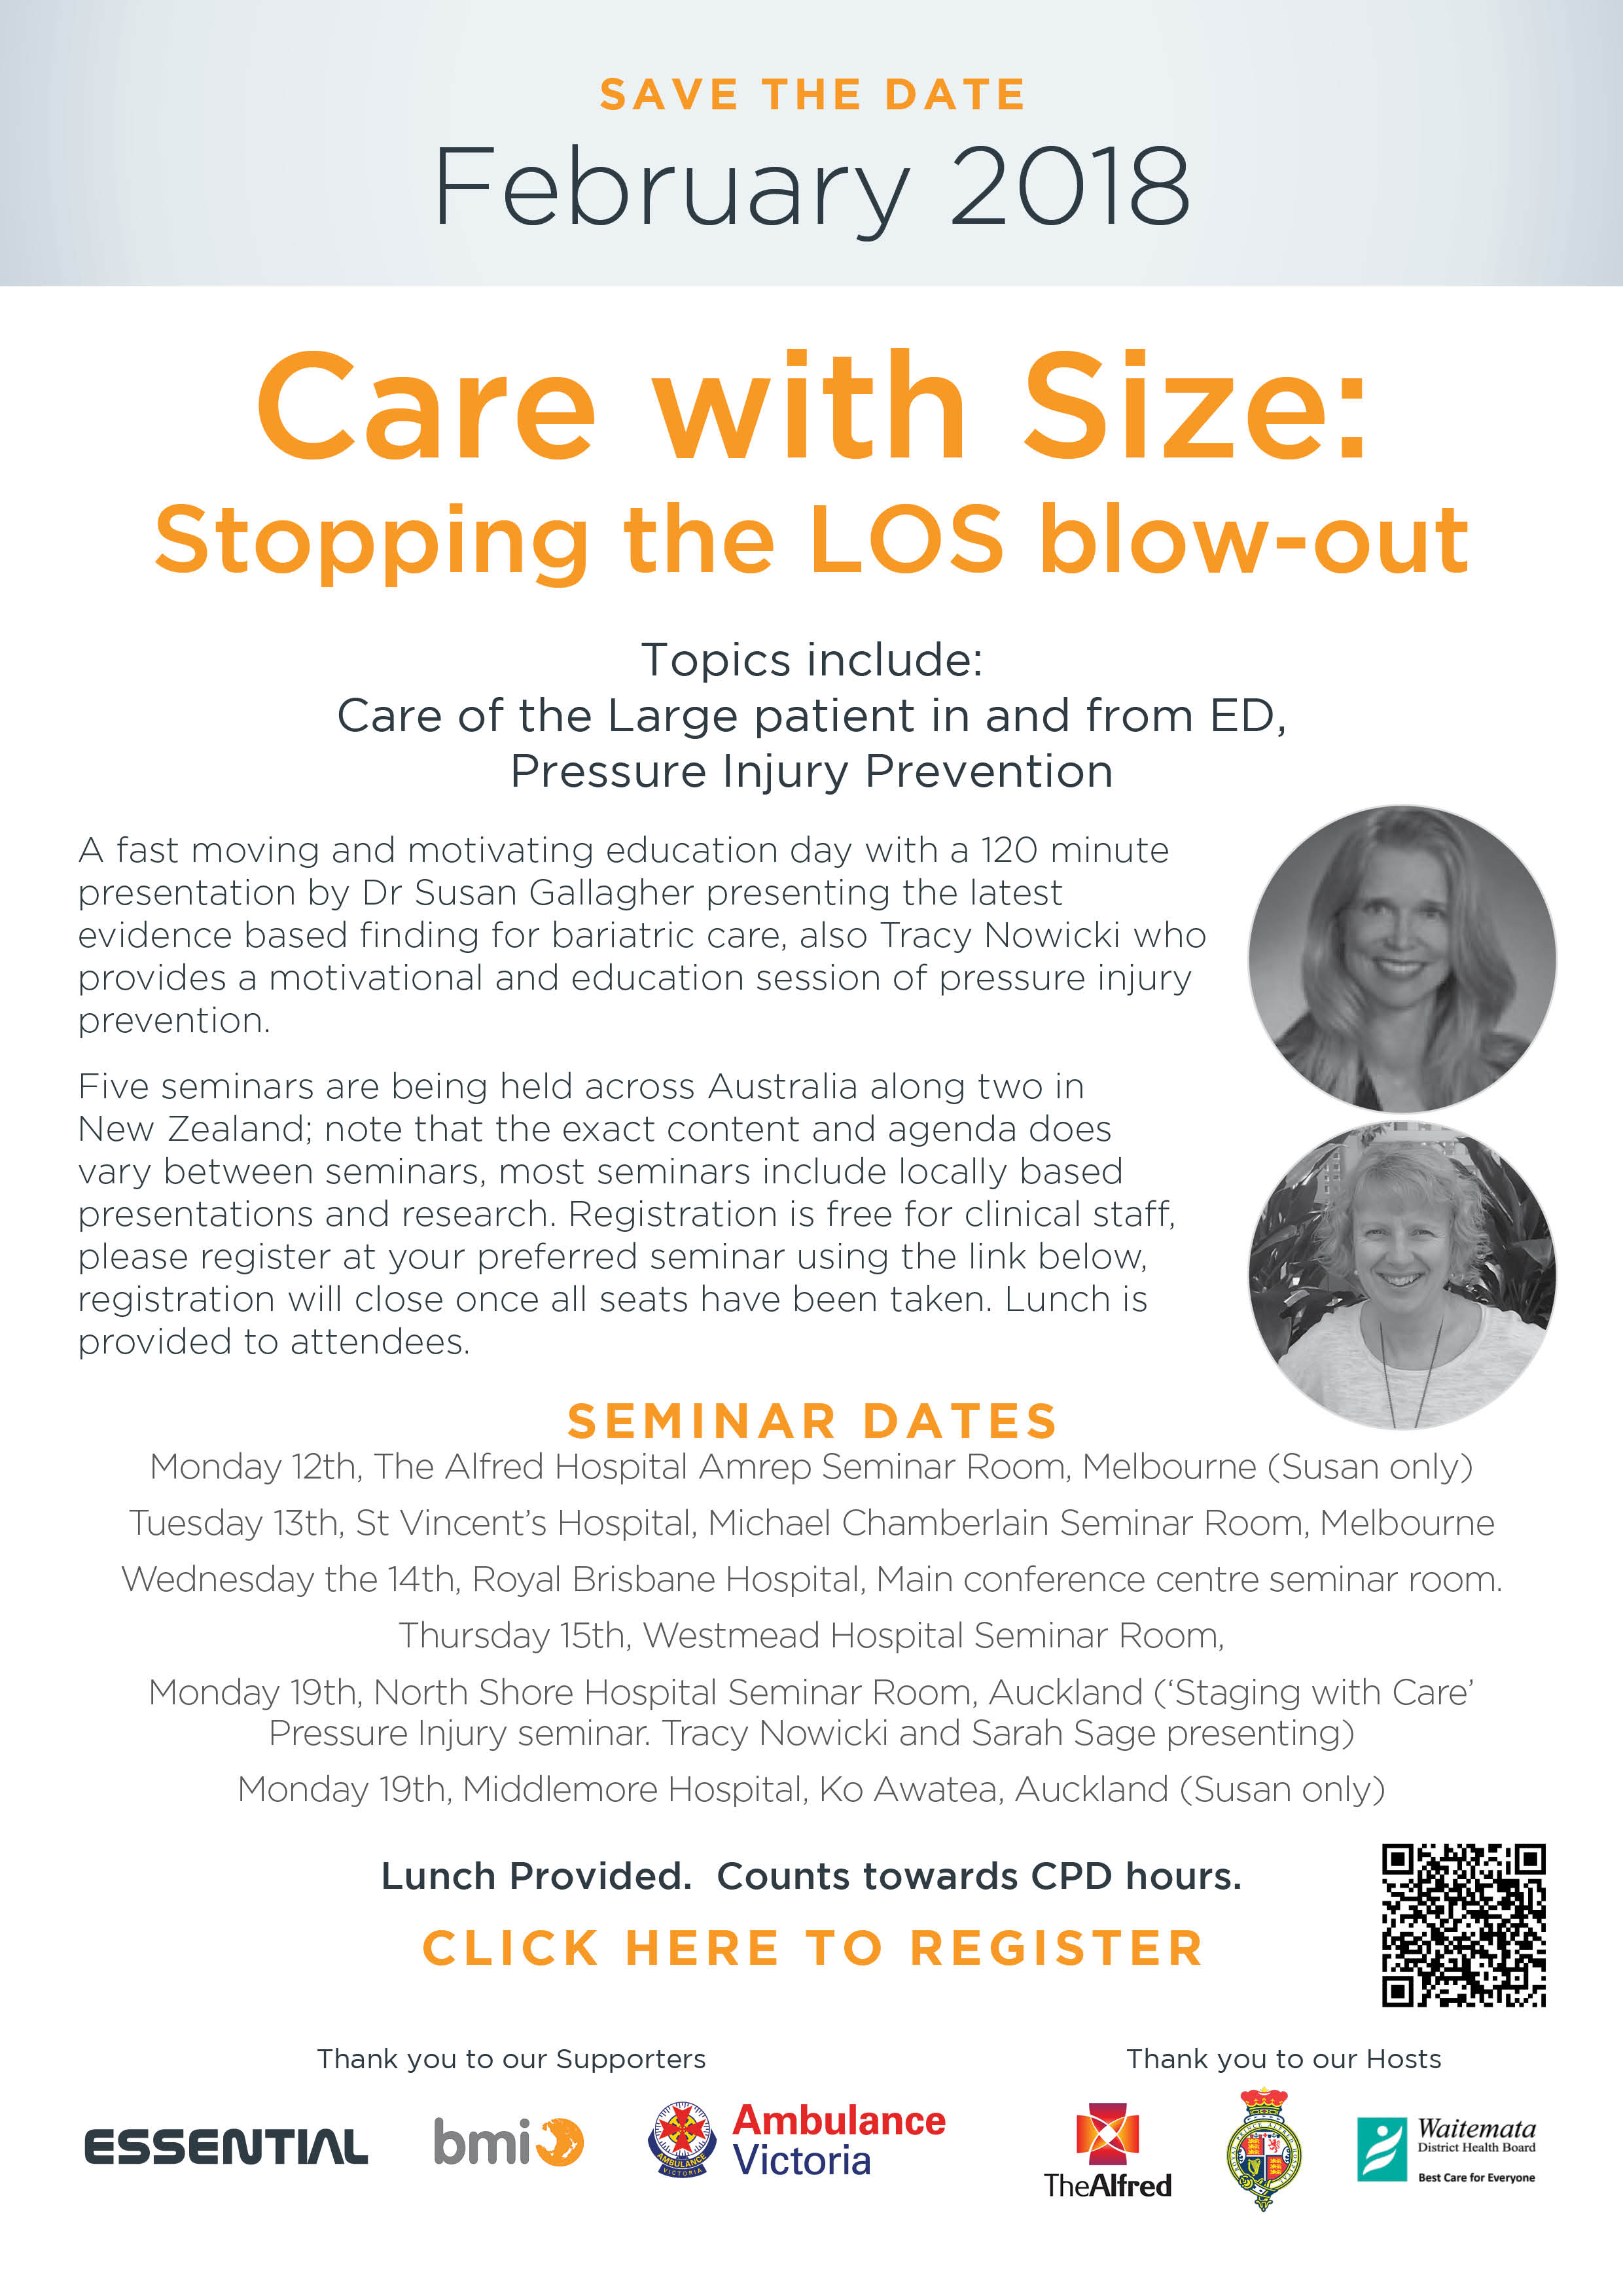 Care with Size: Stopping the LOS blow-out